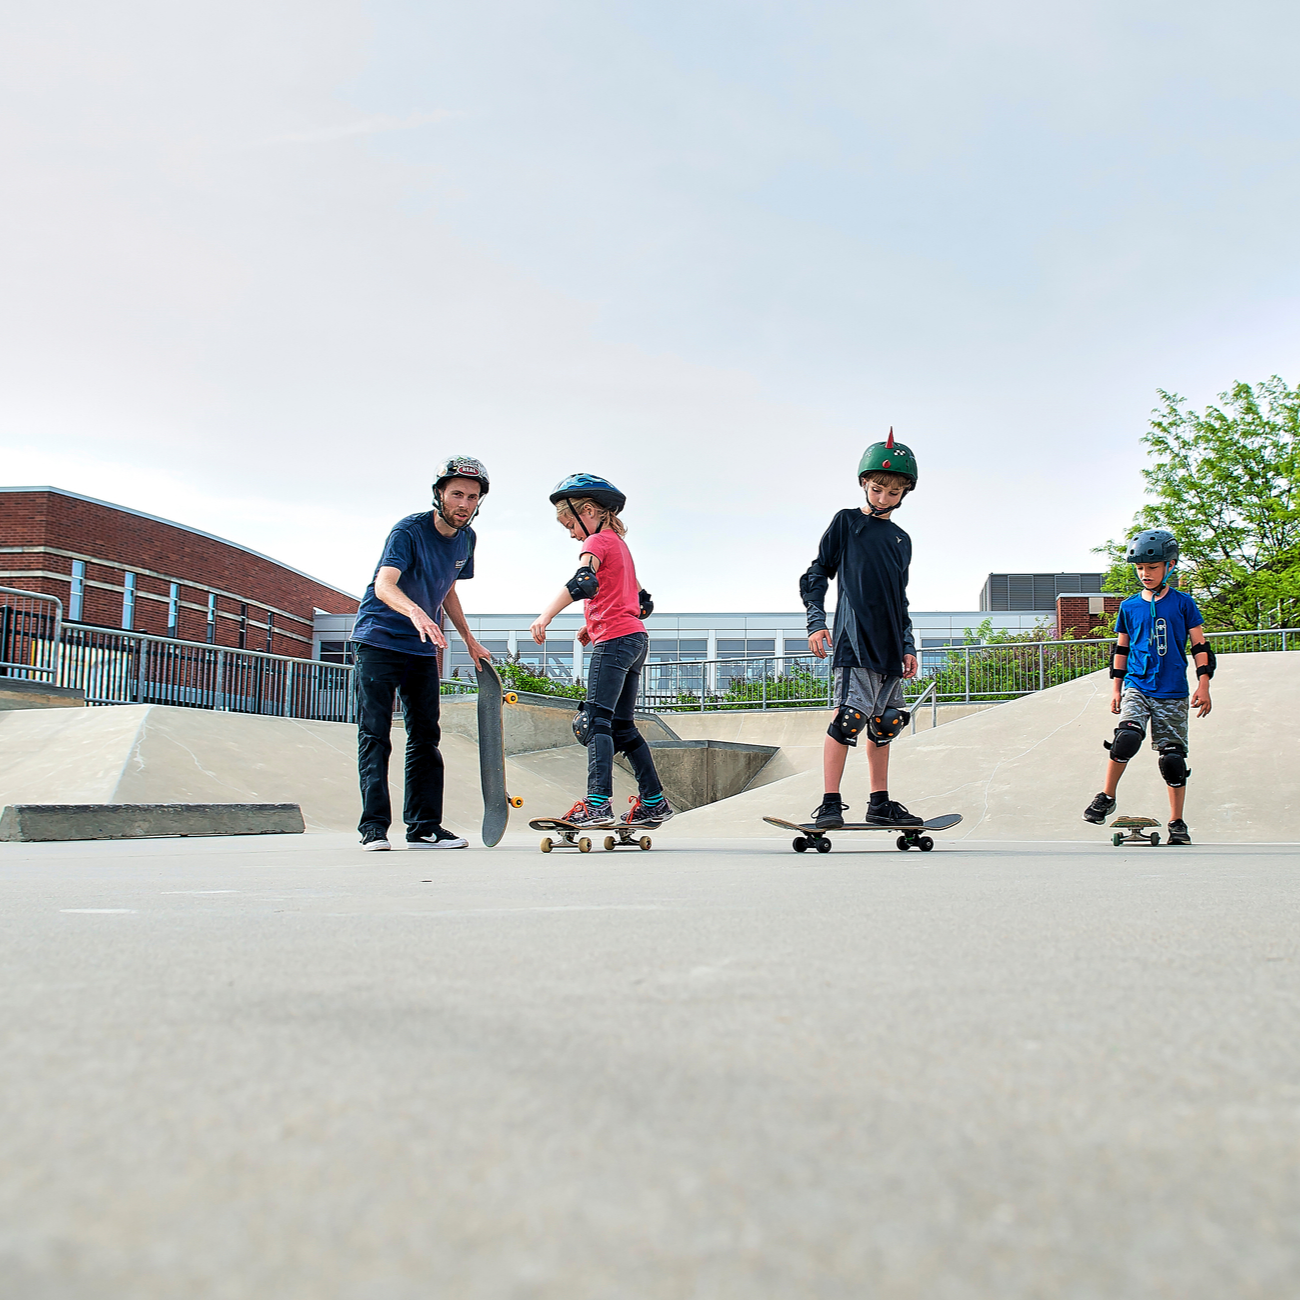 Kids skating at the skate park at the Monon Community Center in Carmel